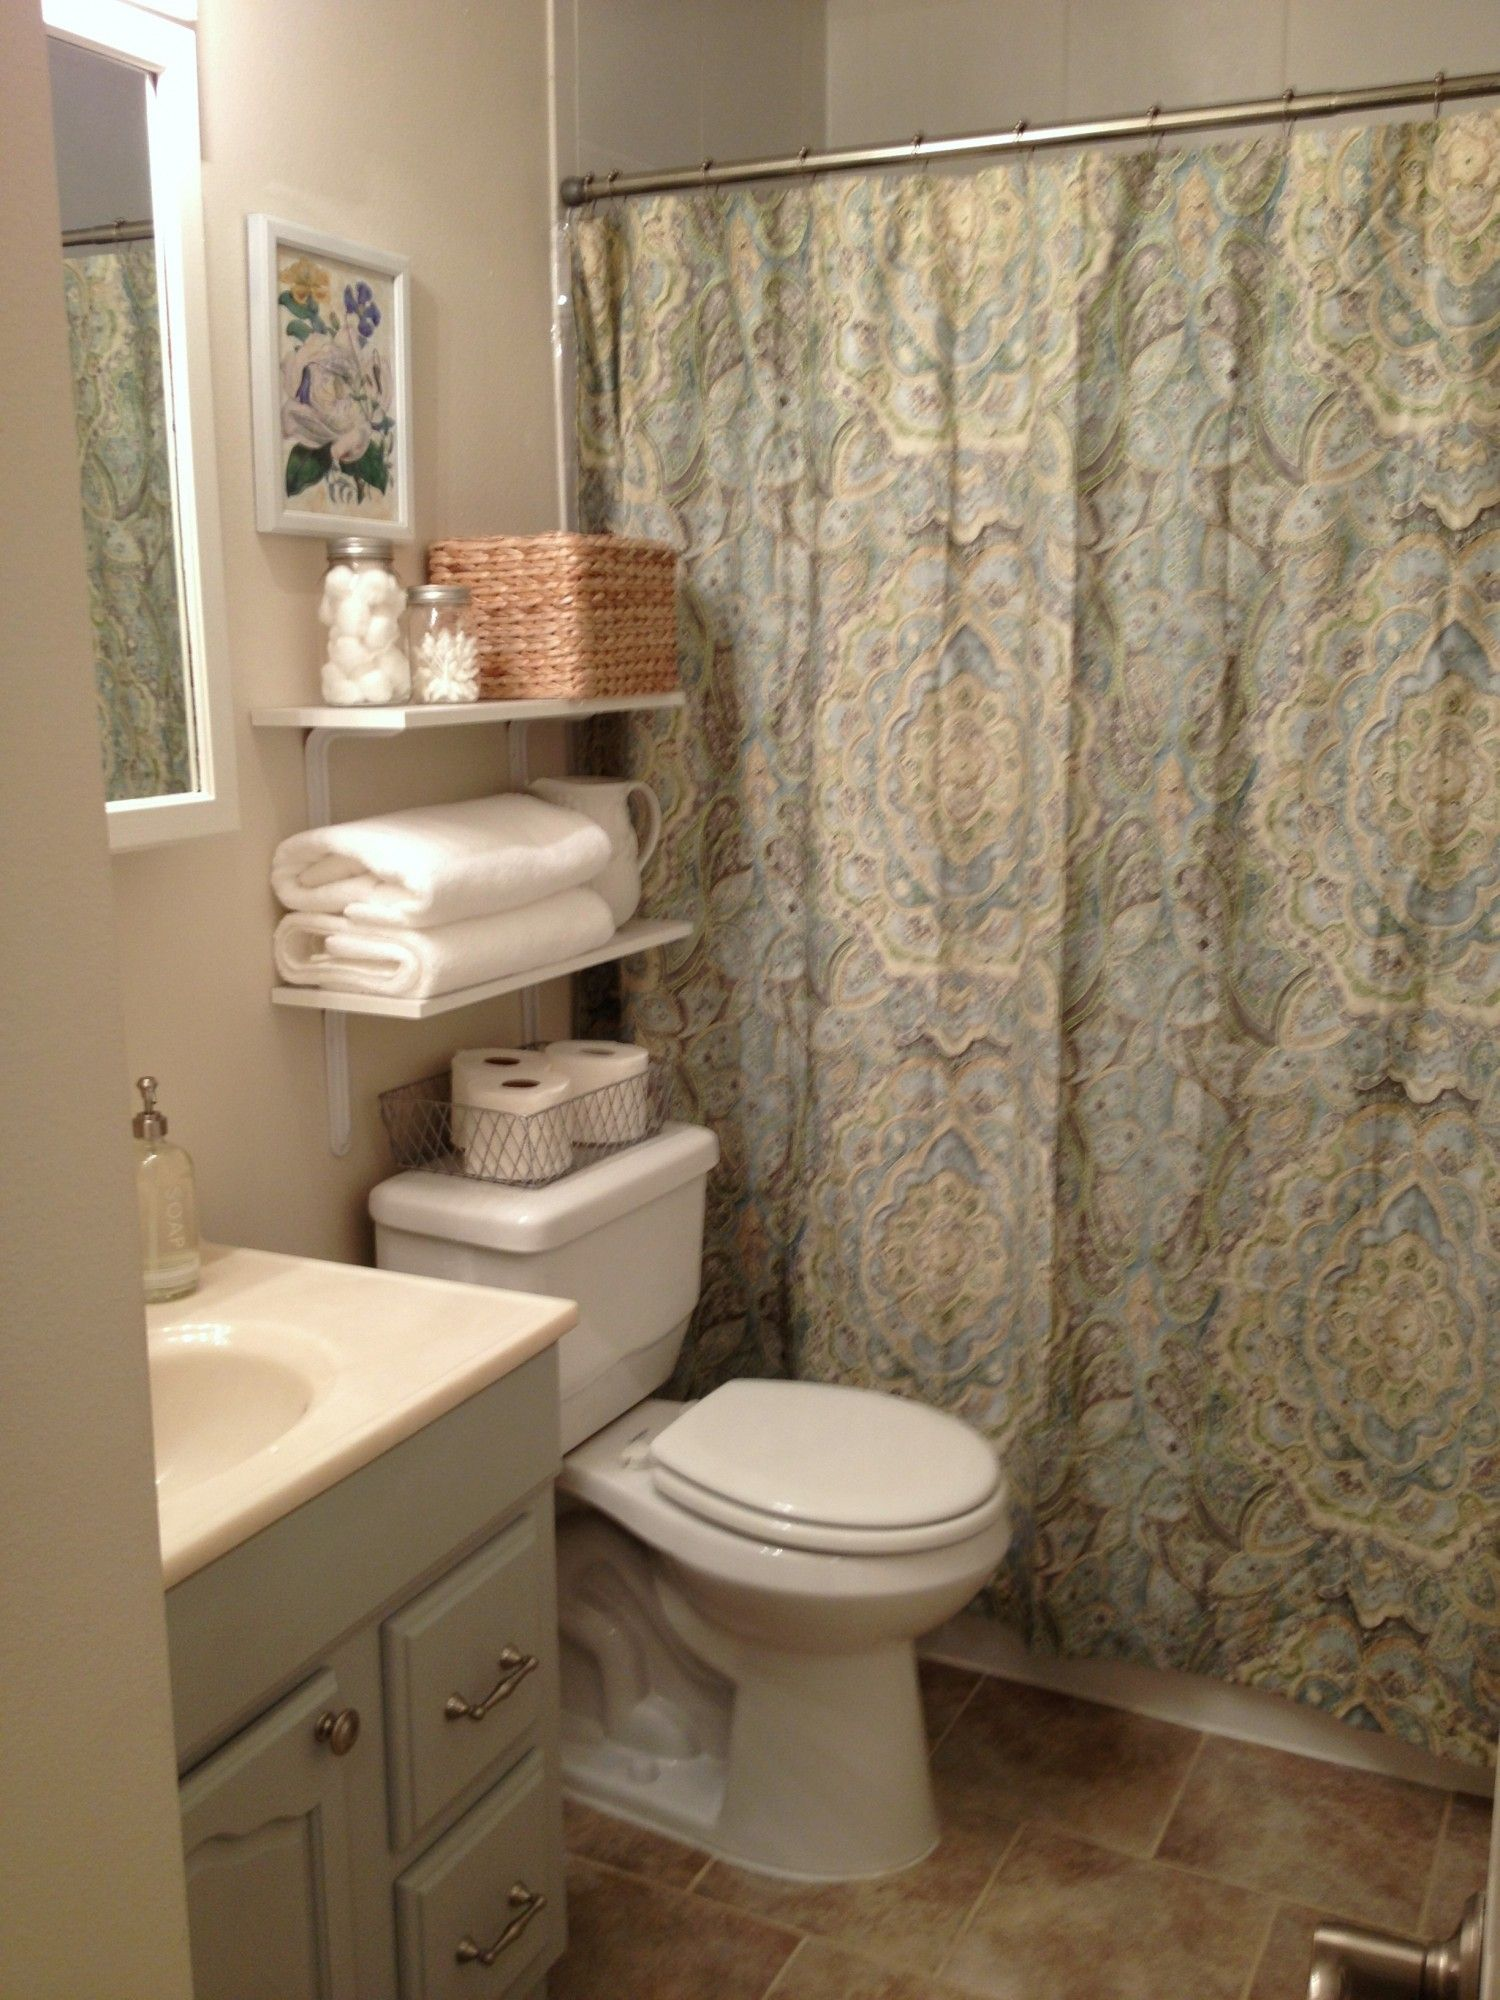 Bathroom Decorating Ideas Above Toilet guest bathroom ideas | here is a little sideside just because